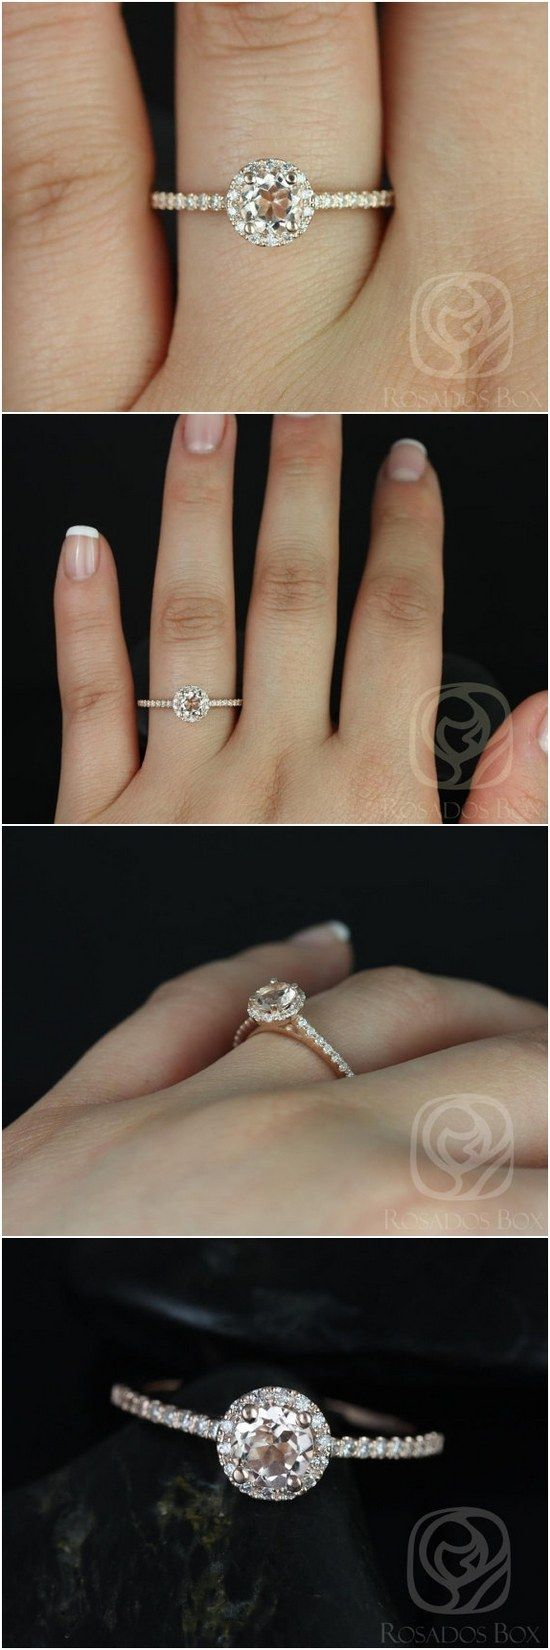 24 Etsy Budgetfriendly Engagement Rings Under $1,000